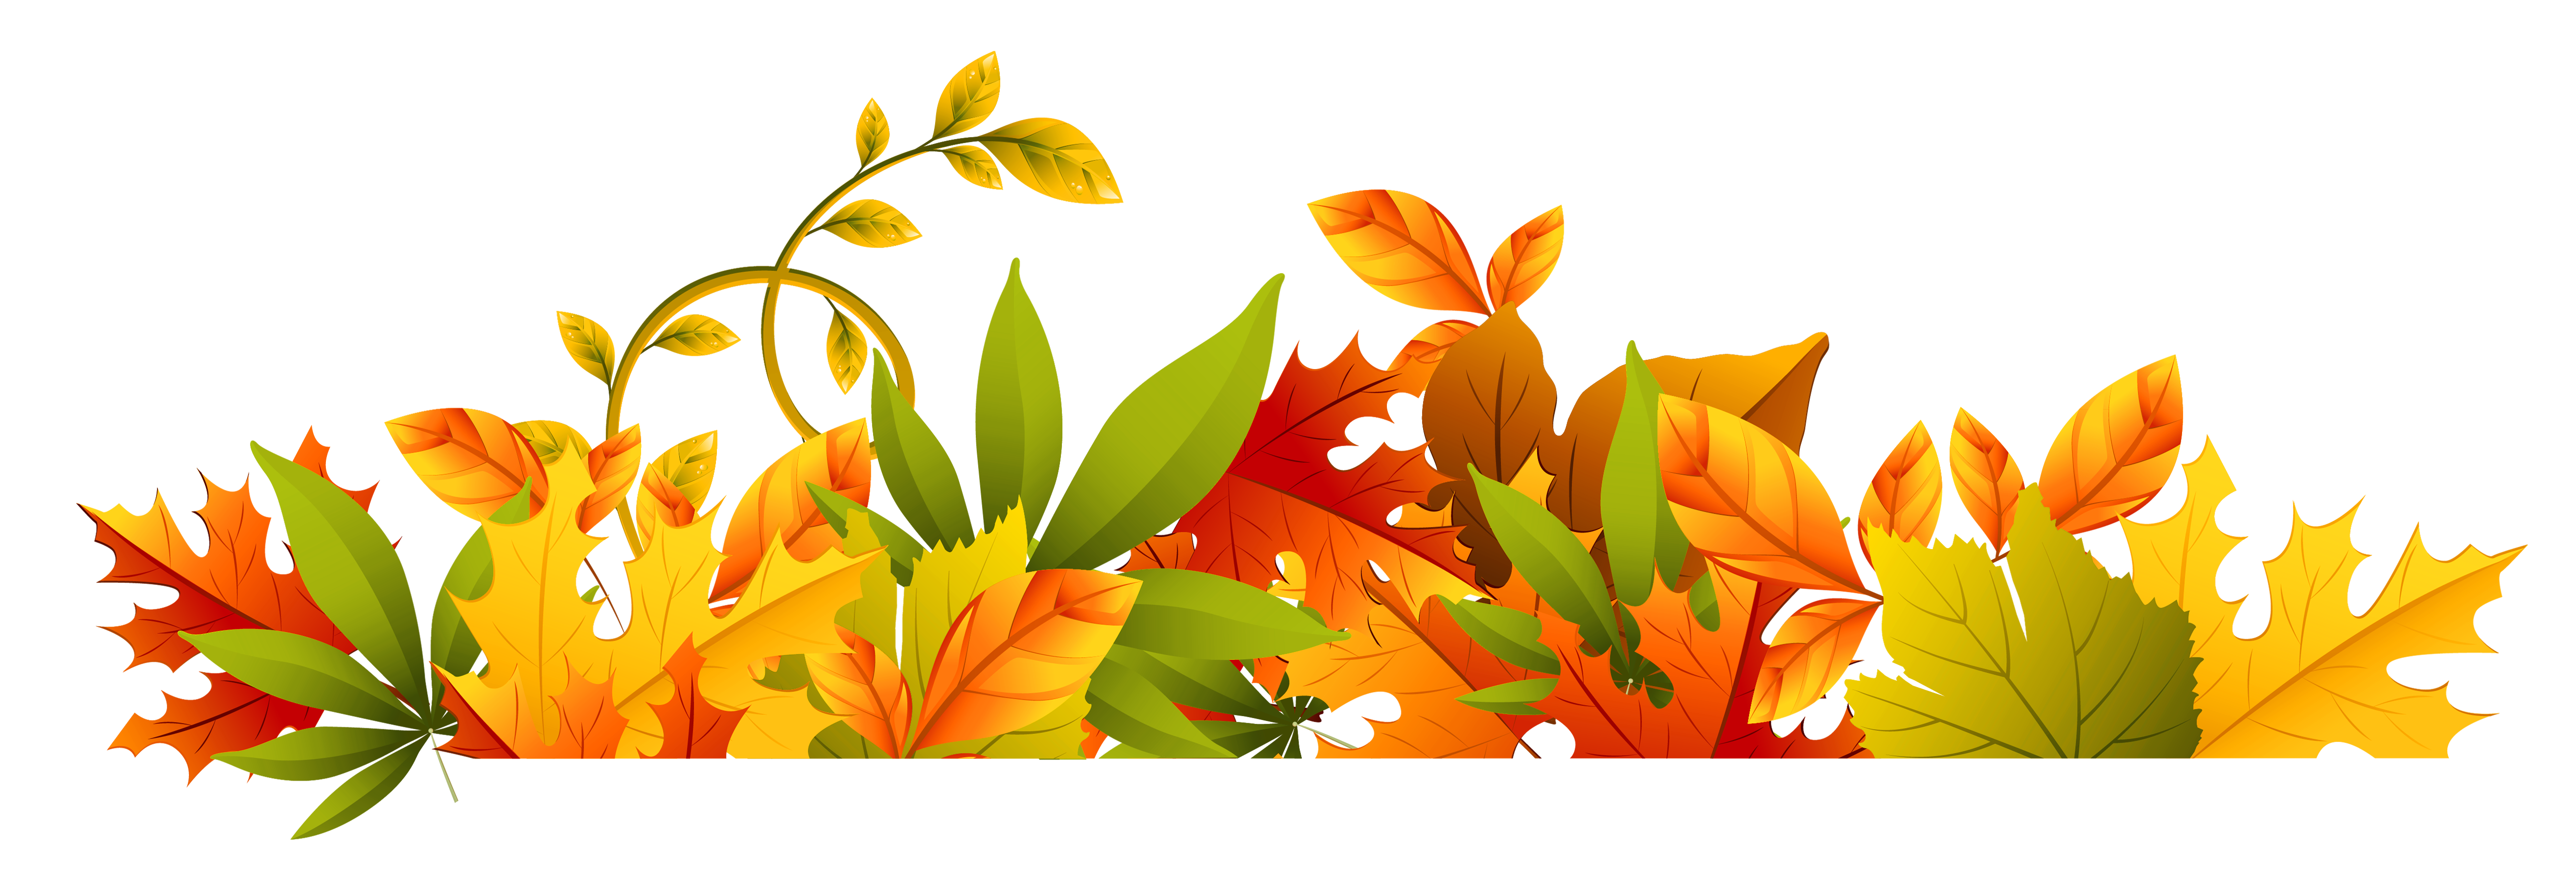 5264x1796 Fall Clipart Free